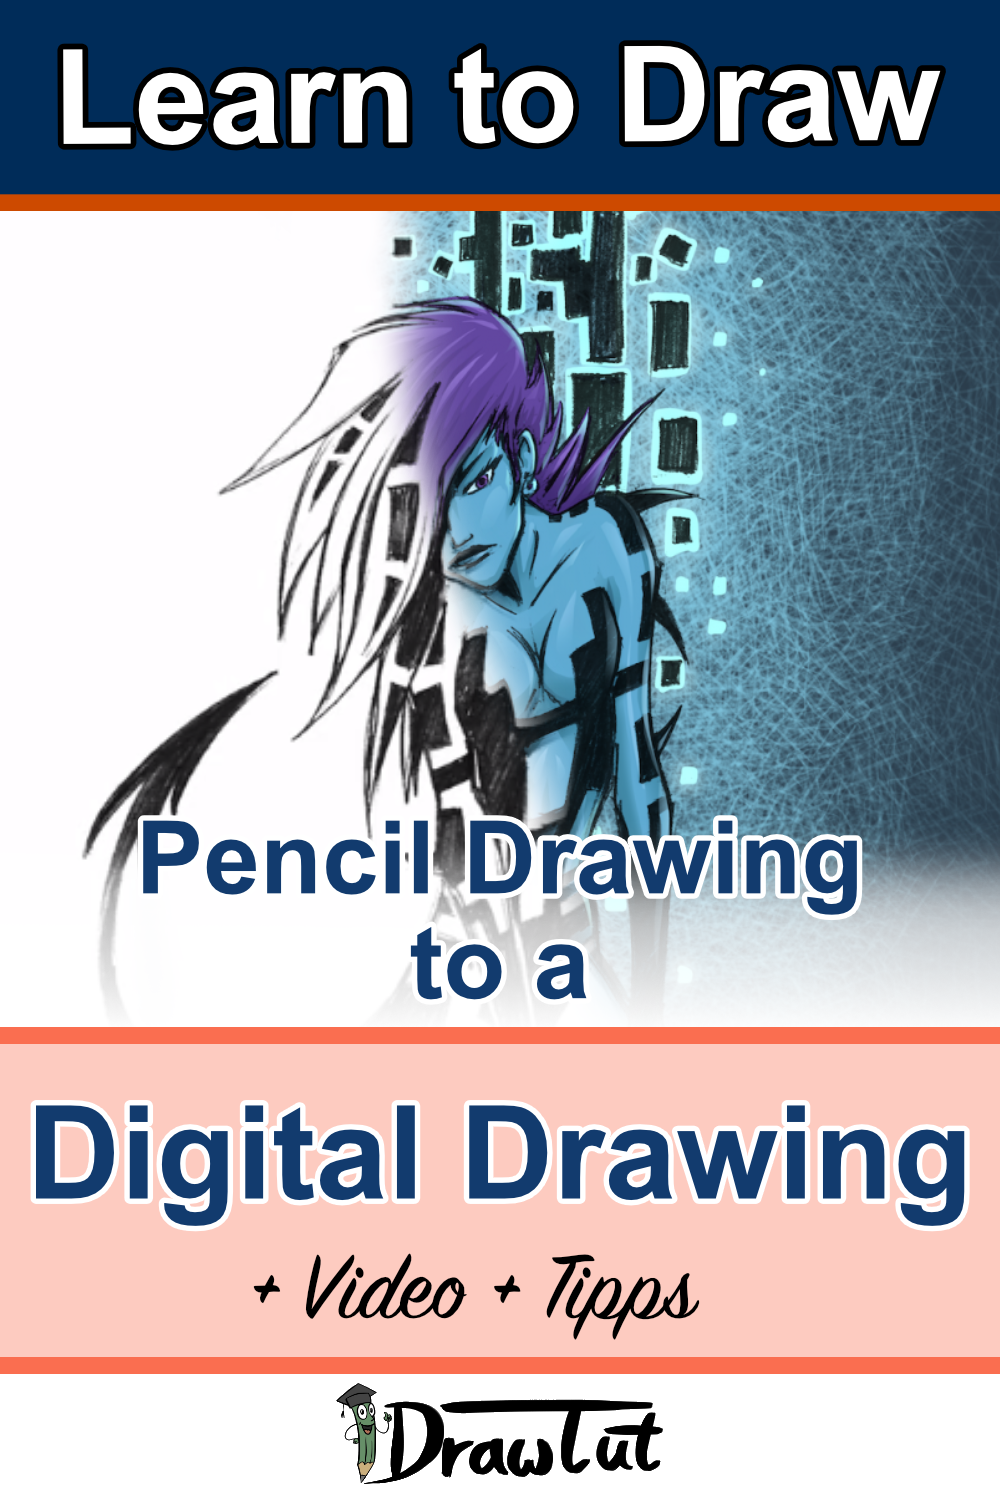 Pencil Drawing to a digital drawing